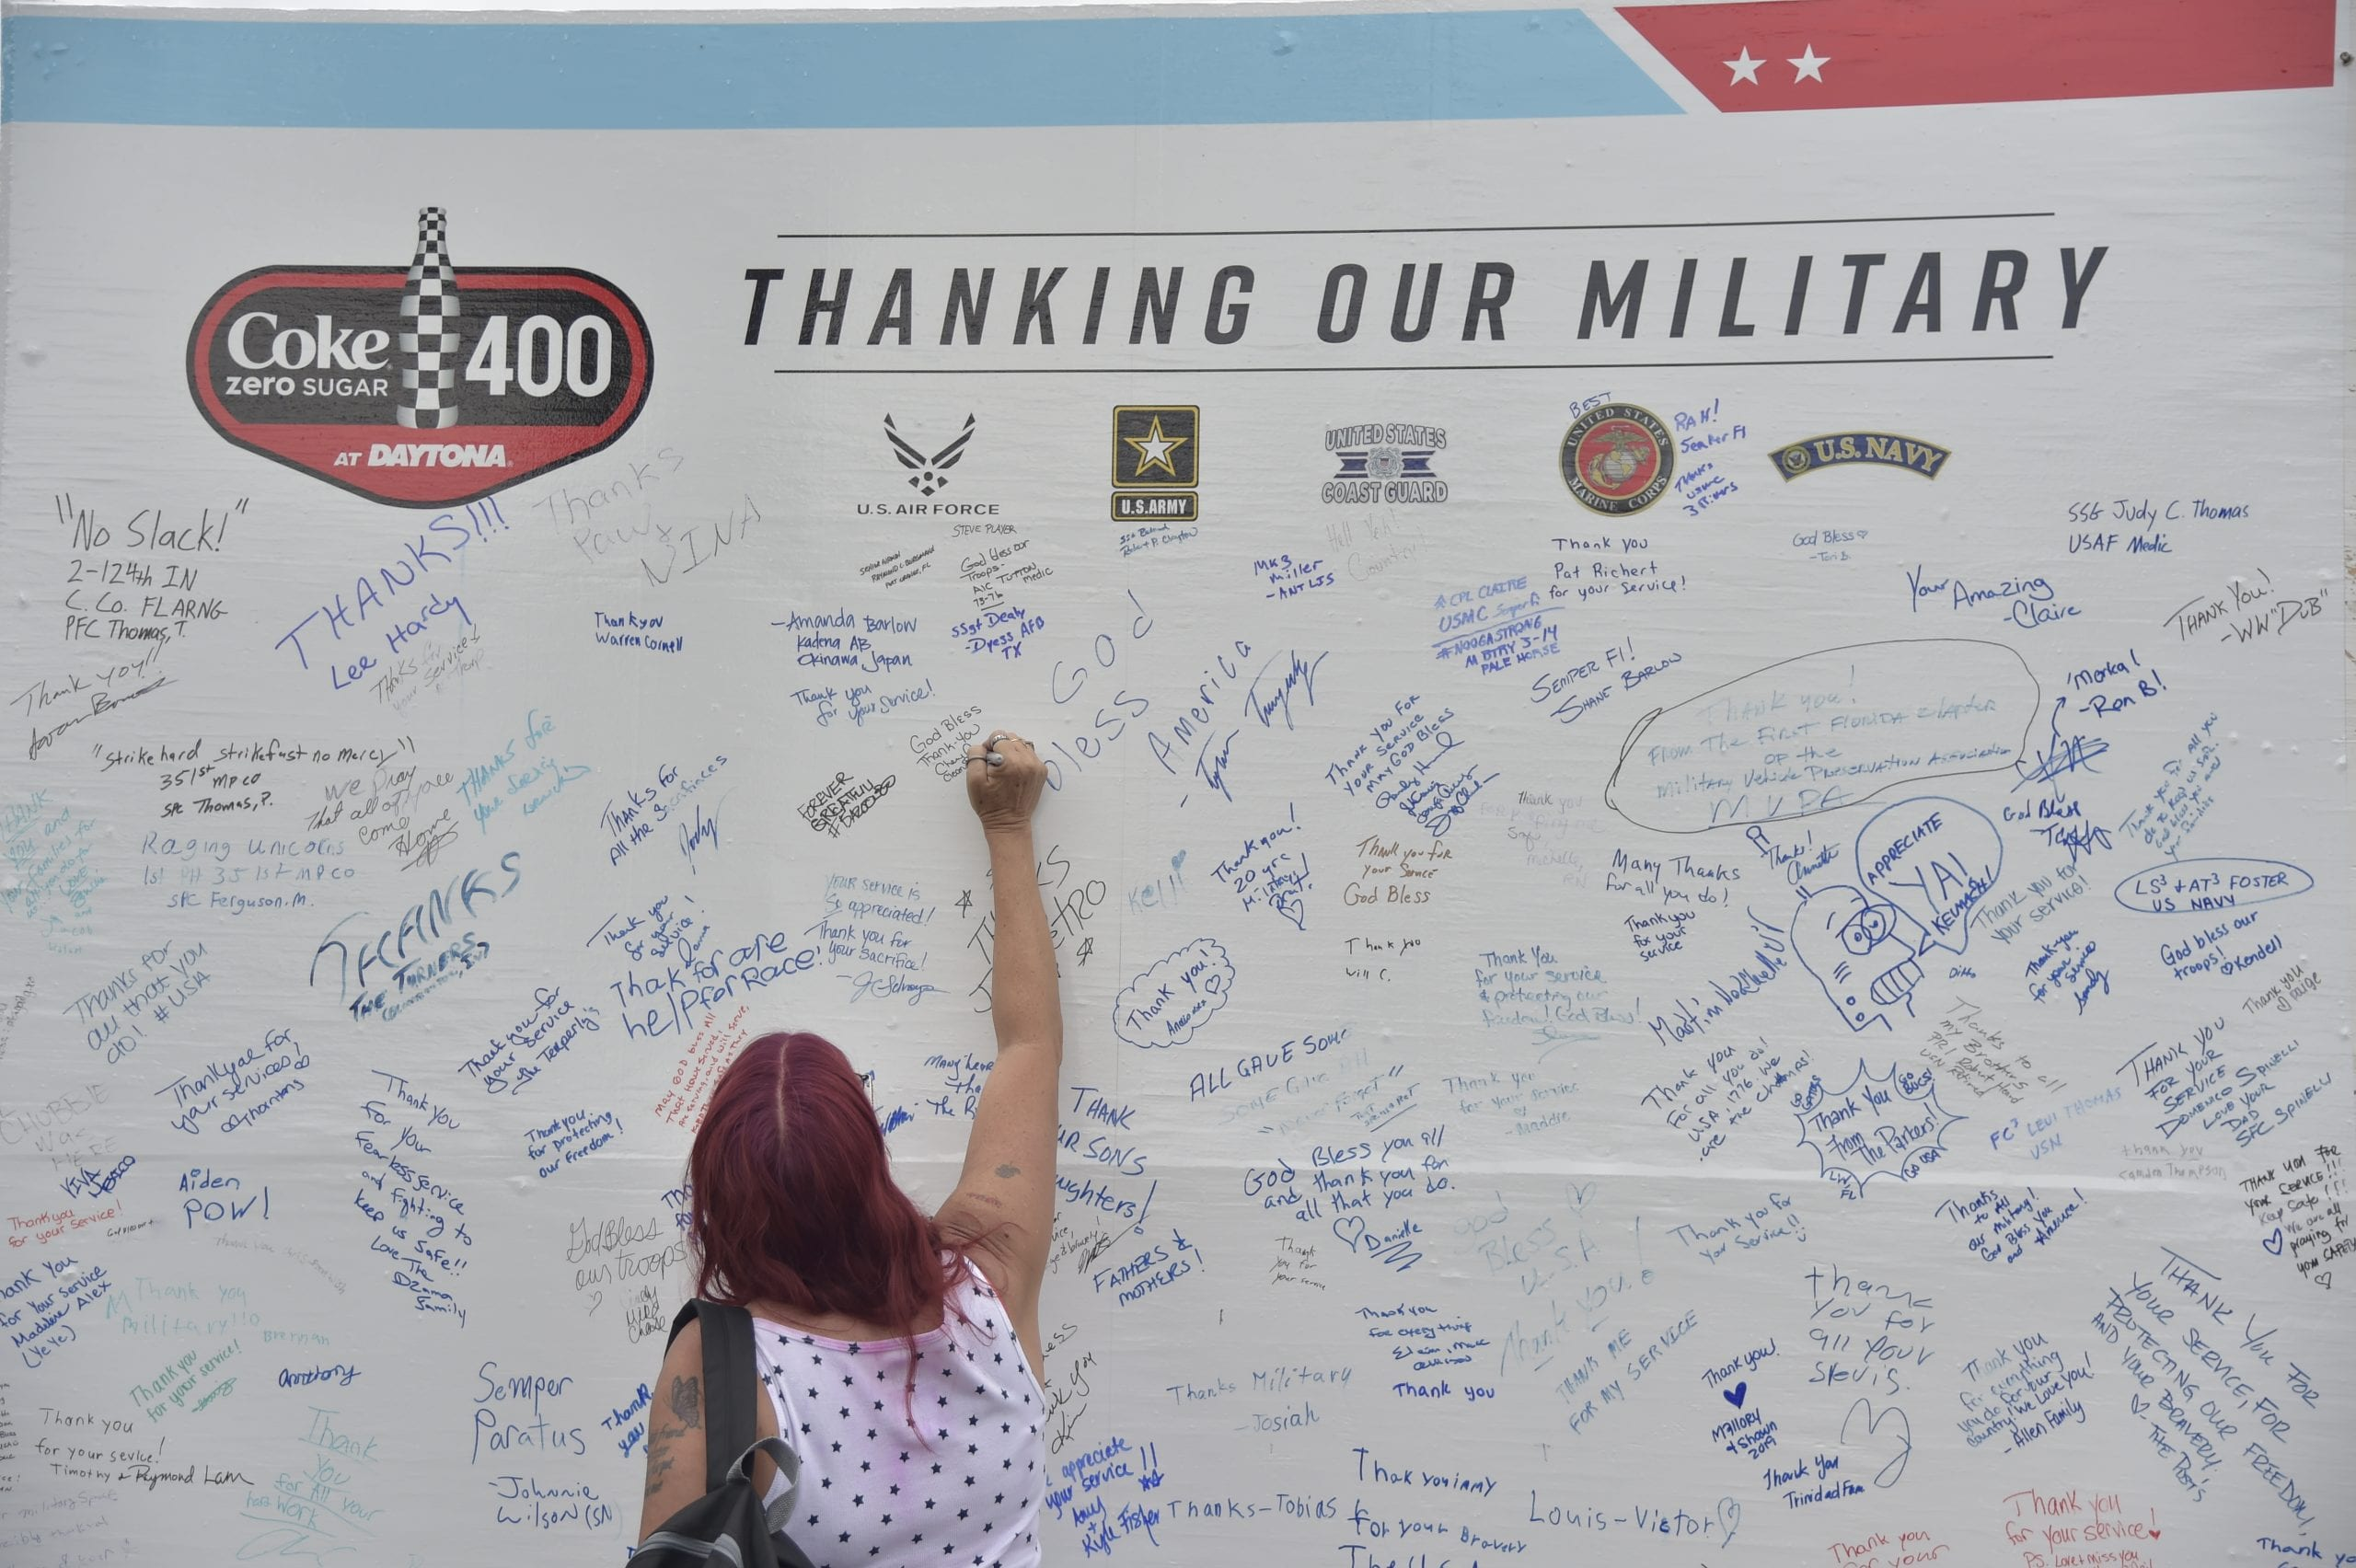 DAYTONA BEACH, FLORIDA - JULY 06: The NASCAR Salutes branding on the activation, military during the Monster Energy NASCAR Cup Series Coke Zero Sugar 400 at Daytona International Speedway on July 06, 2019 in Daytona Beach, Florida. (Photo by Jeff Curry/Getty Images)   Getty Images